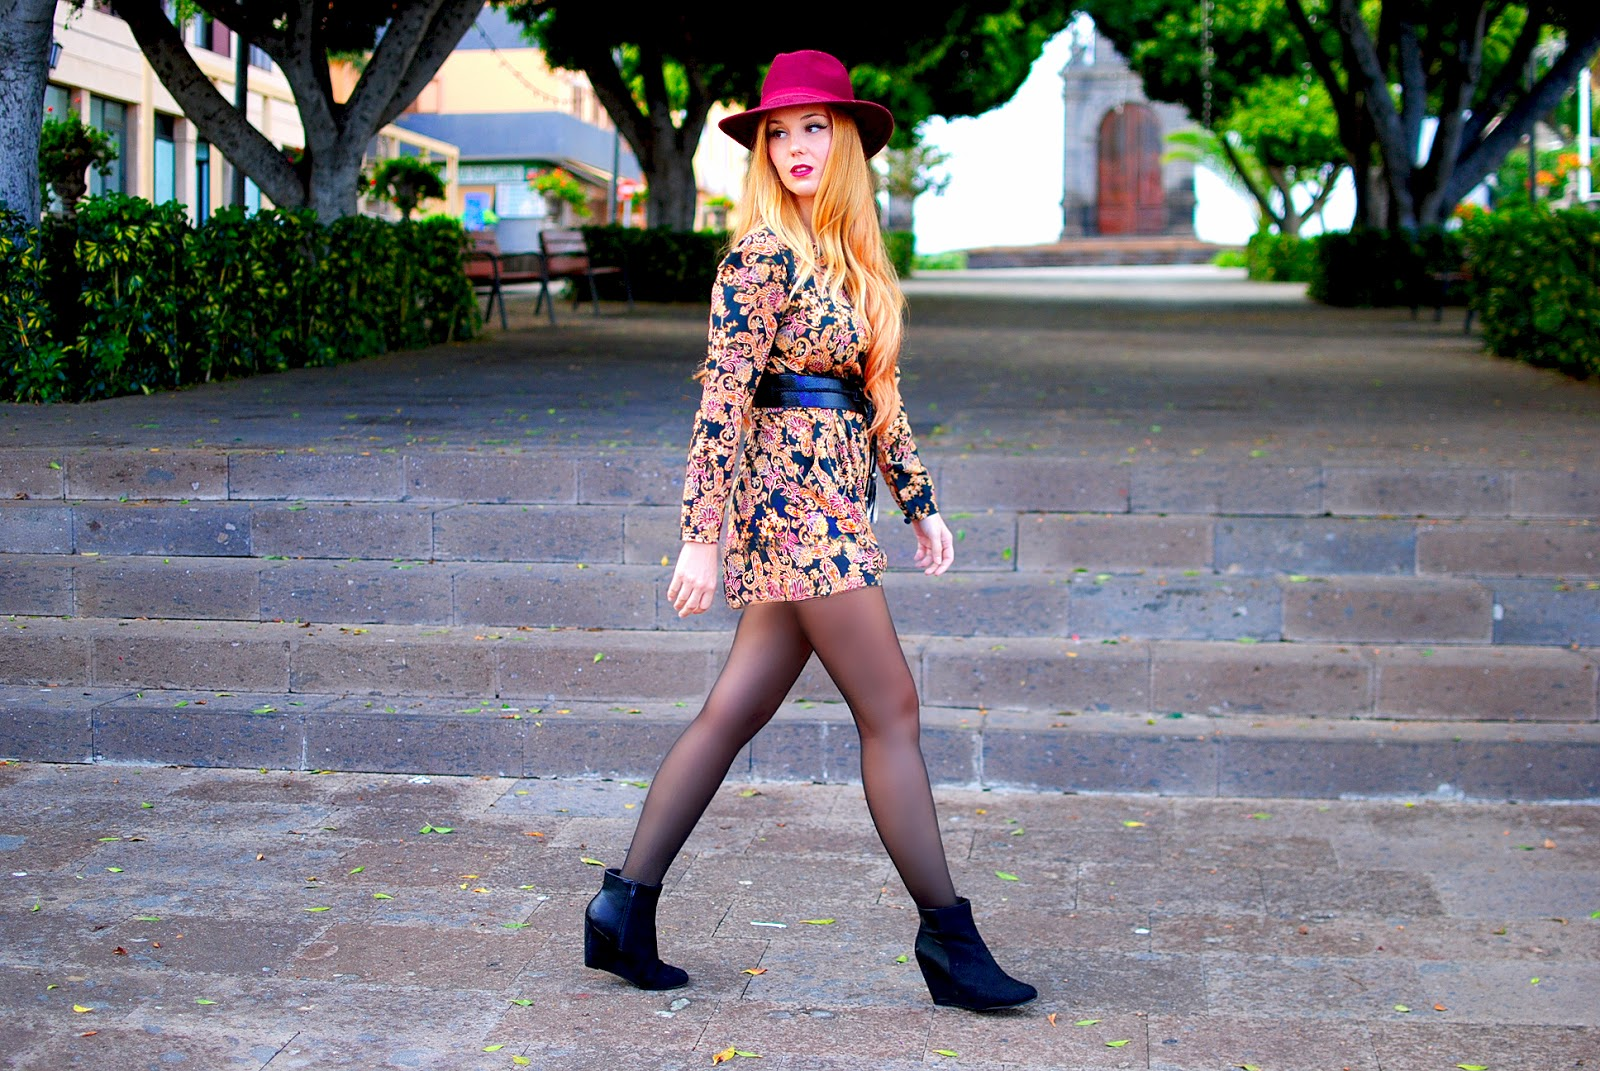 nery hdez, inlovewithfashion playsuits, primark, luxuryforprincess, hair extensions